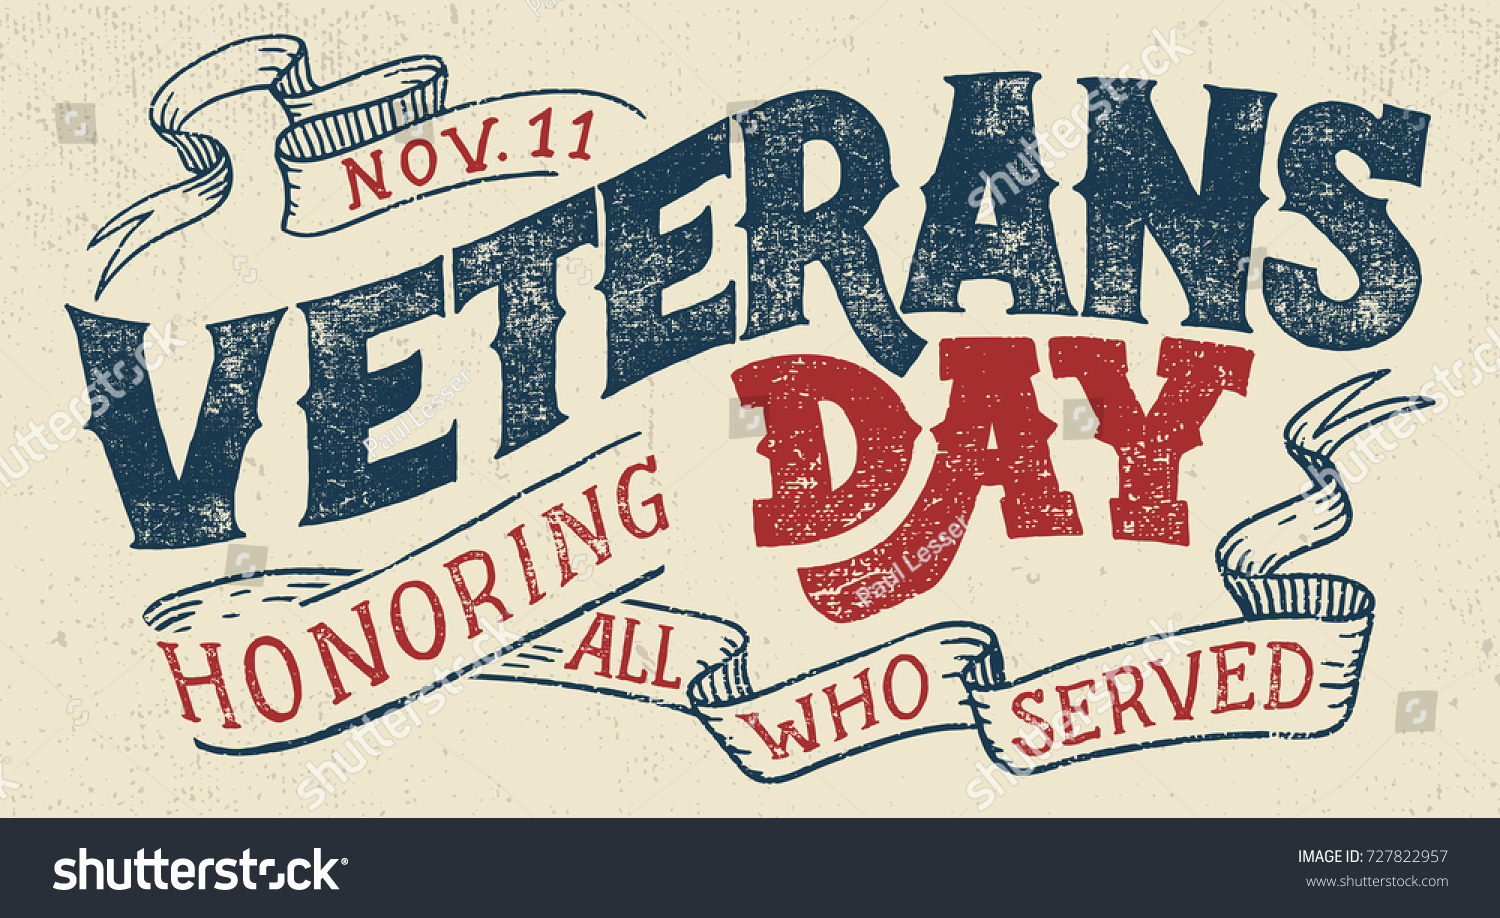 Veterans Day Honoring All Who Served Stock Photo (Photo, Vector ...